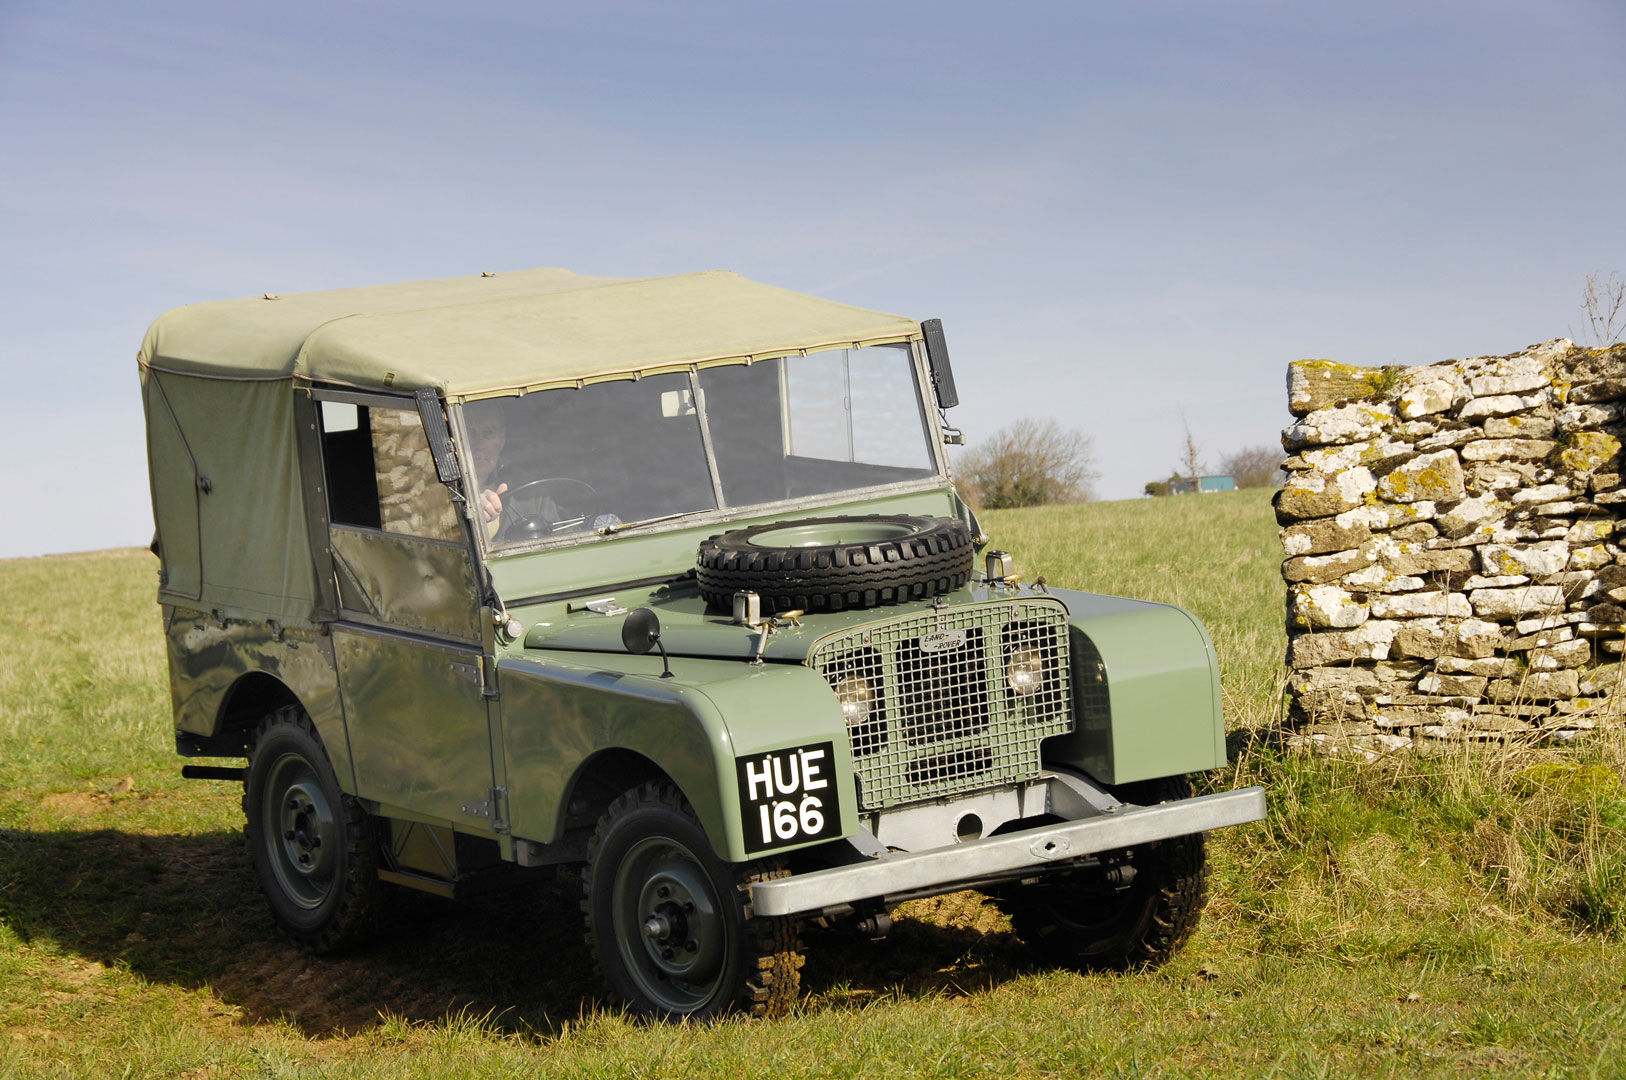 On the 70th anniversary of the Series I, here are Land Rover's major historical moments thumbnail